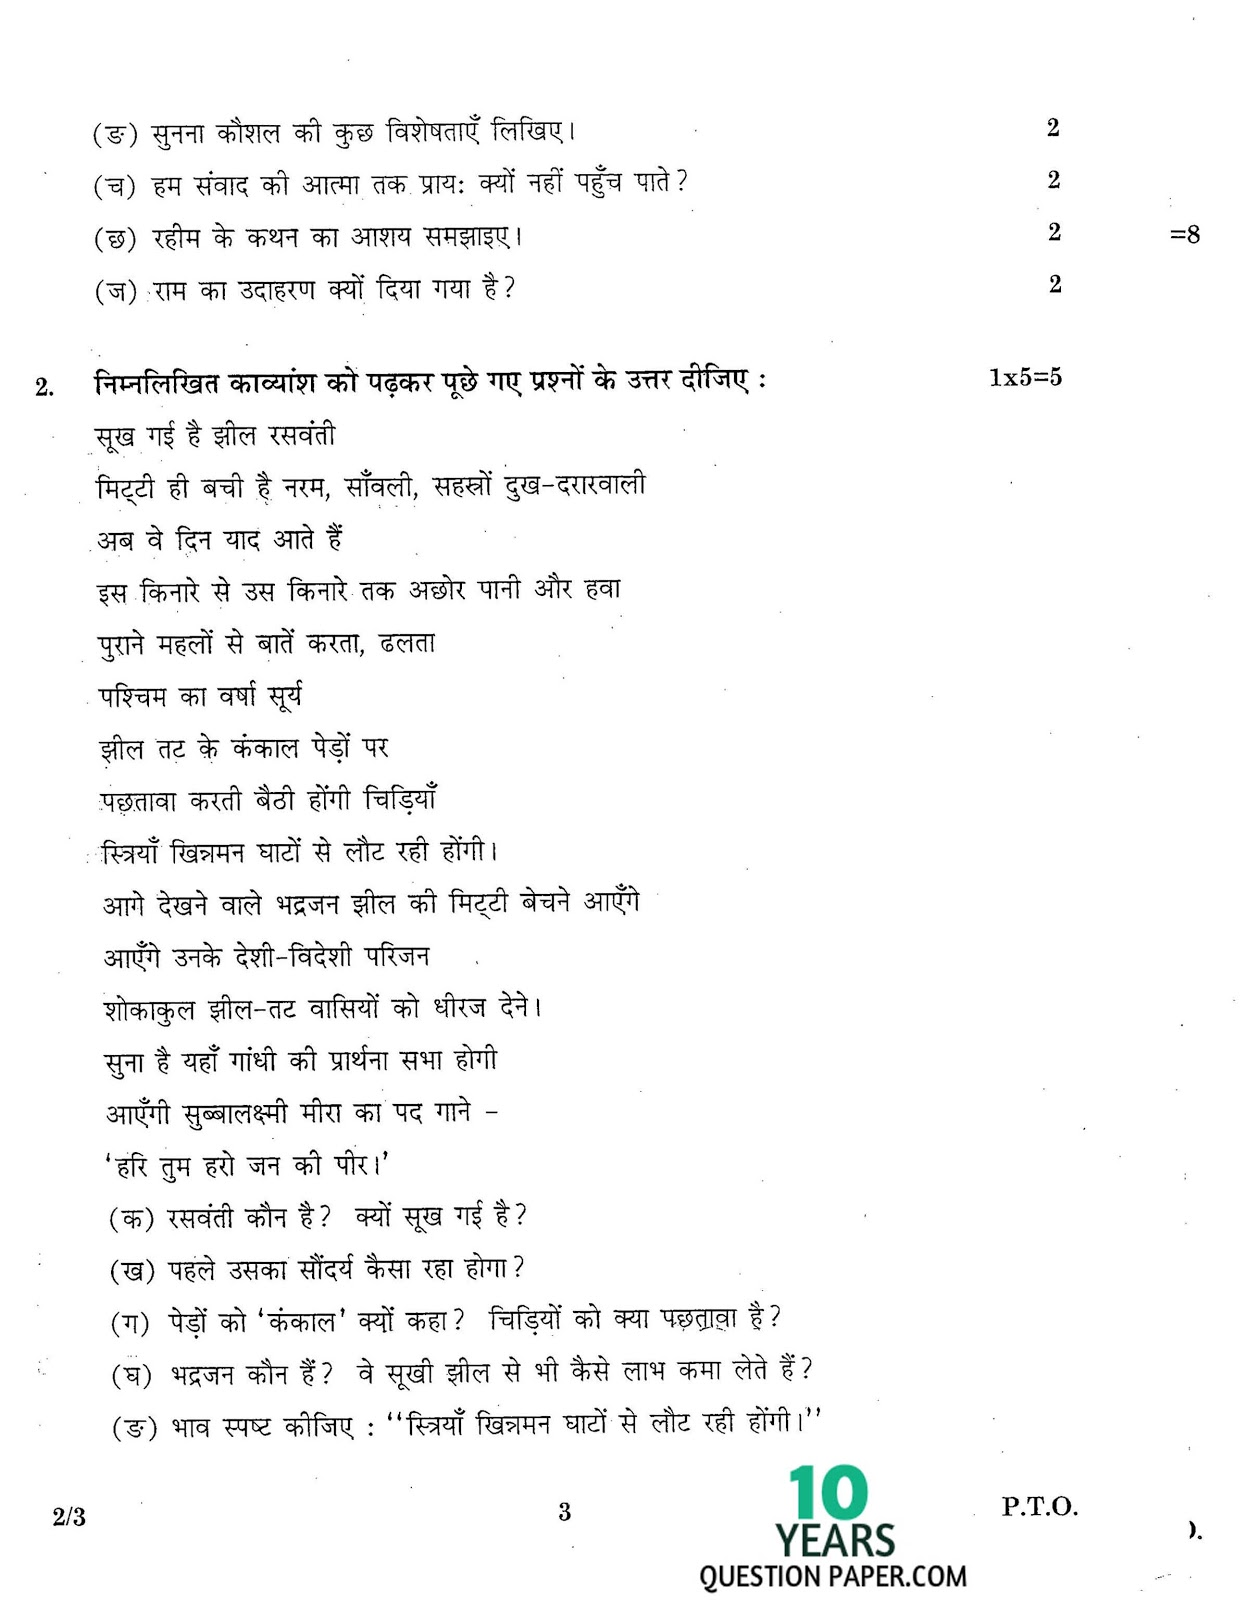 Worksheet Comprehension Passages For Grade 3 With Questions hindi comprehension passages for class 3 cbse 2016 core 12 board question paper set 10